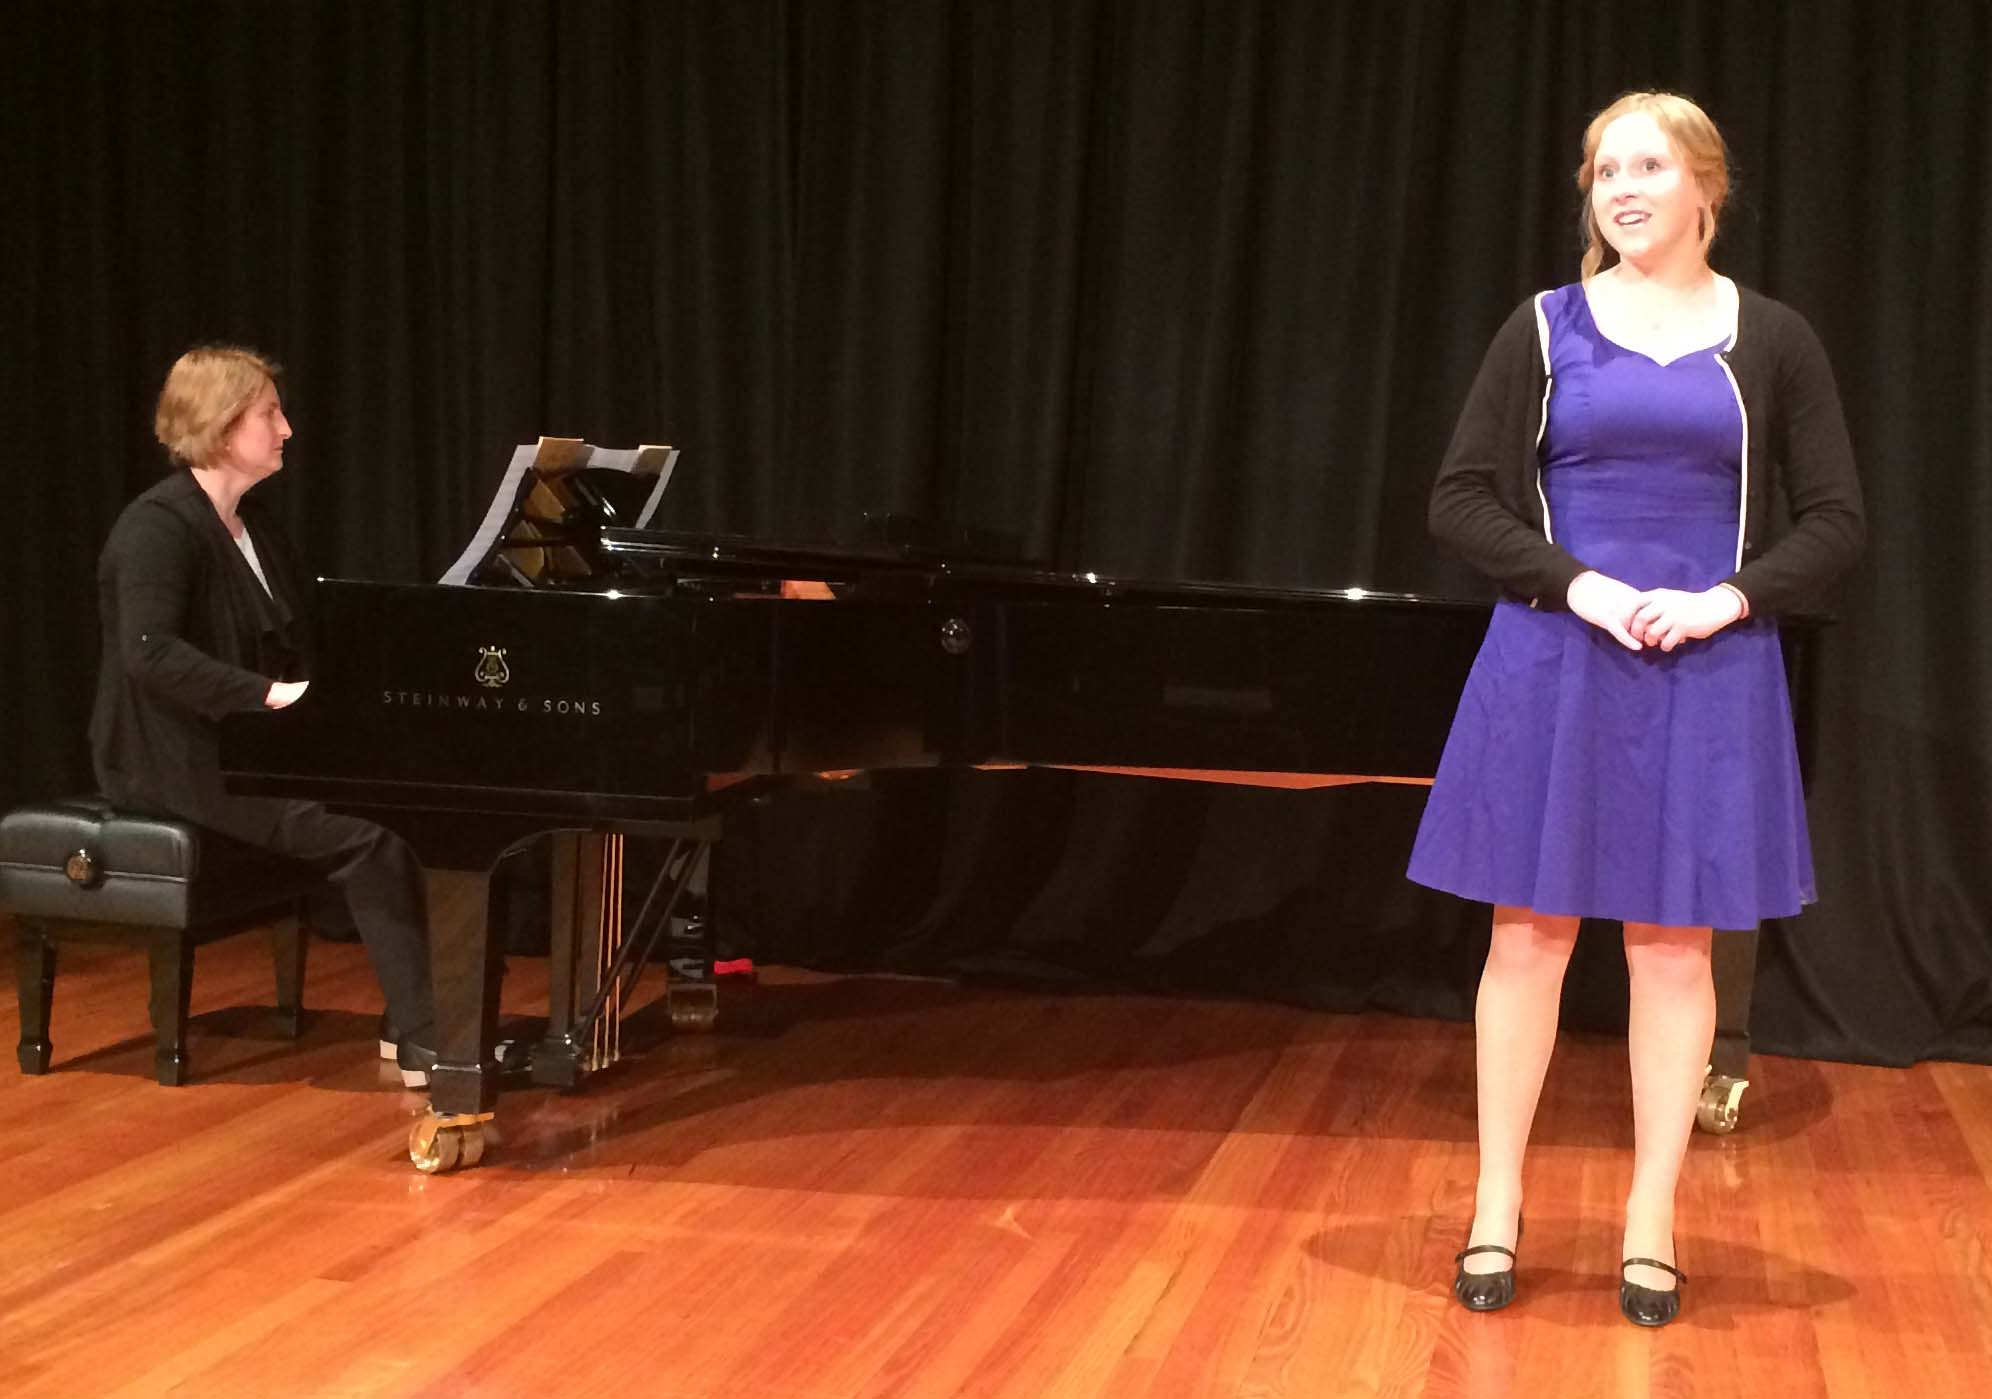 VCE singing student, Emily Shields, from Wanganui Park Secondary College sang 3 classical songs,